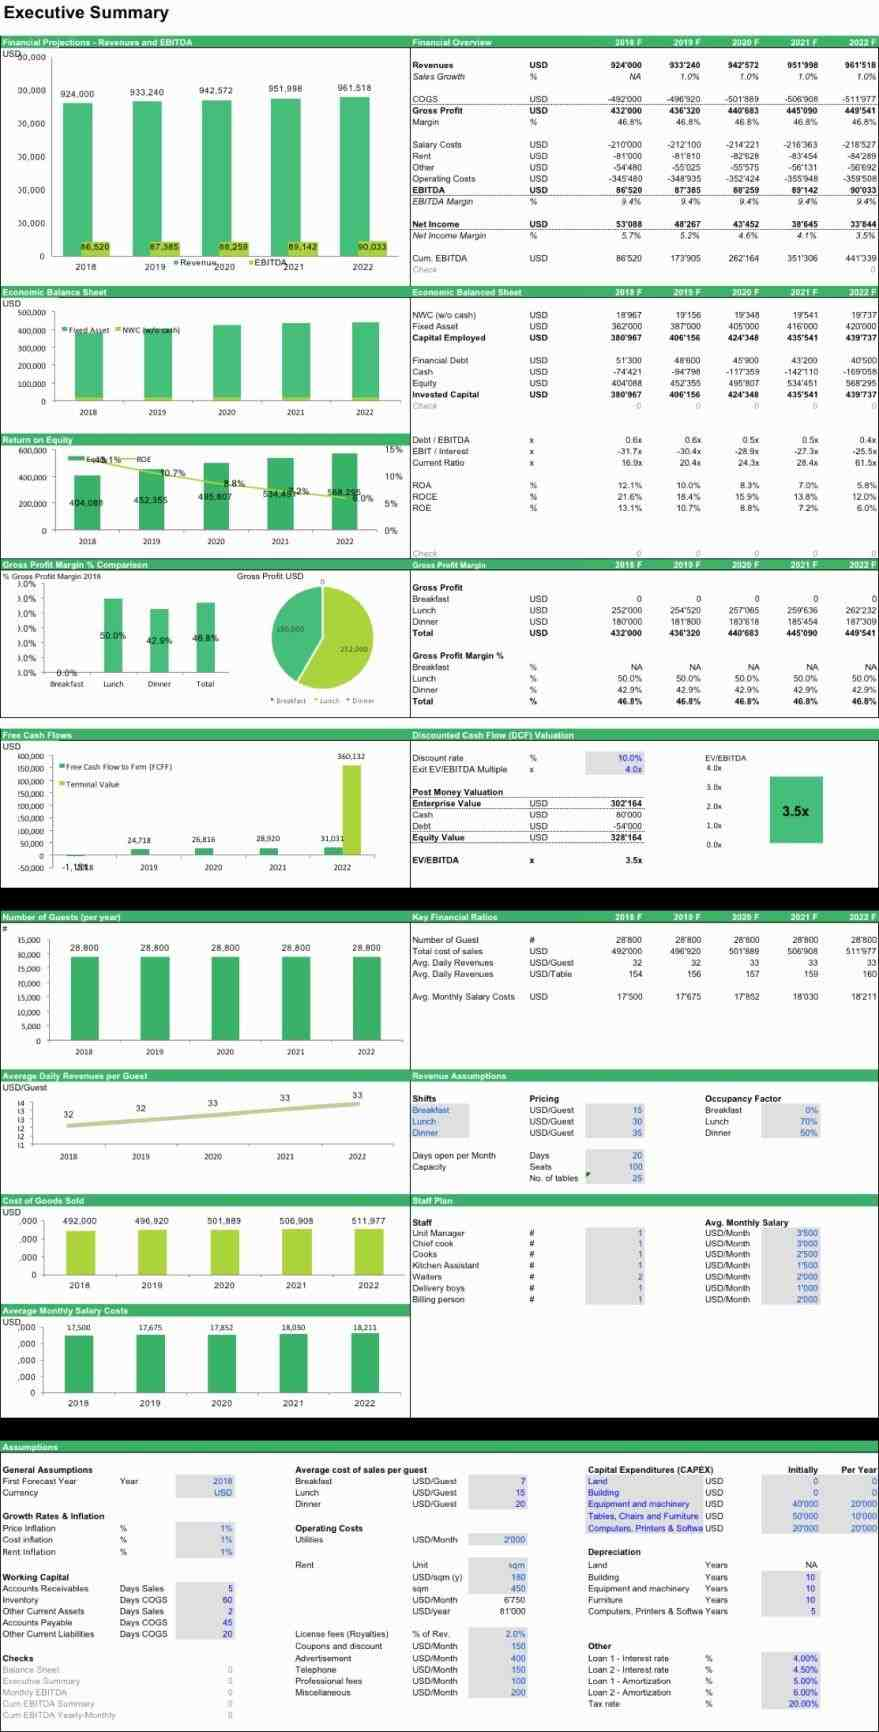 free rhalramiinfo business plan year financial budget projection model in rhoerstrupcom business Financial Modeling Excel Templates plan year financial budget projection